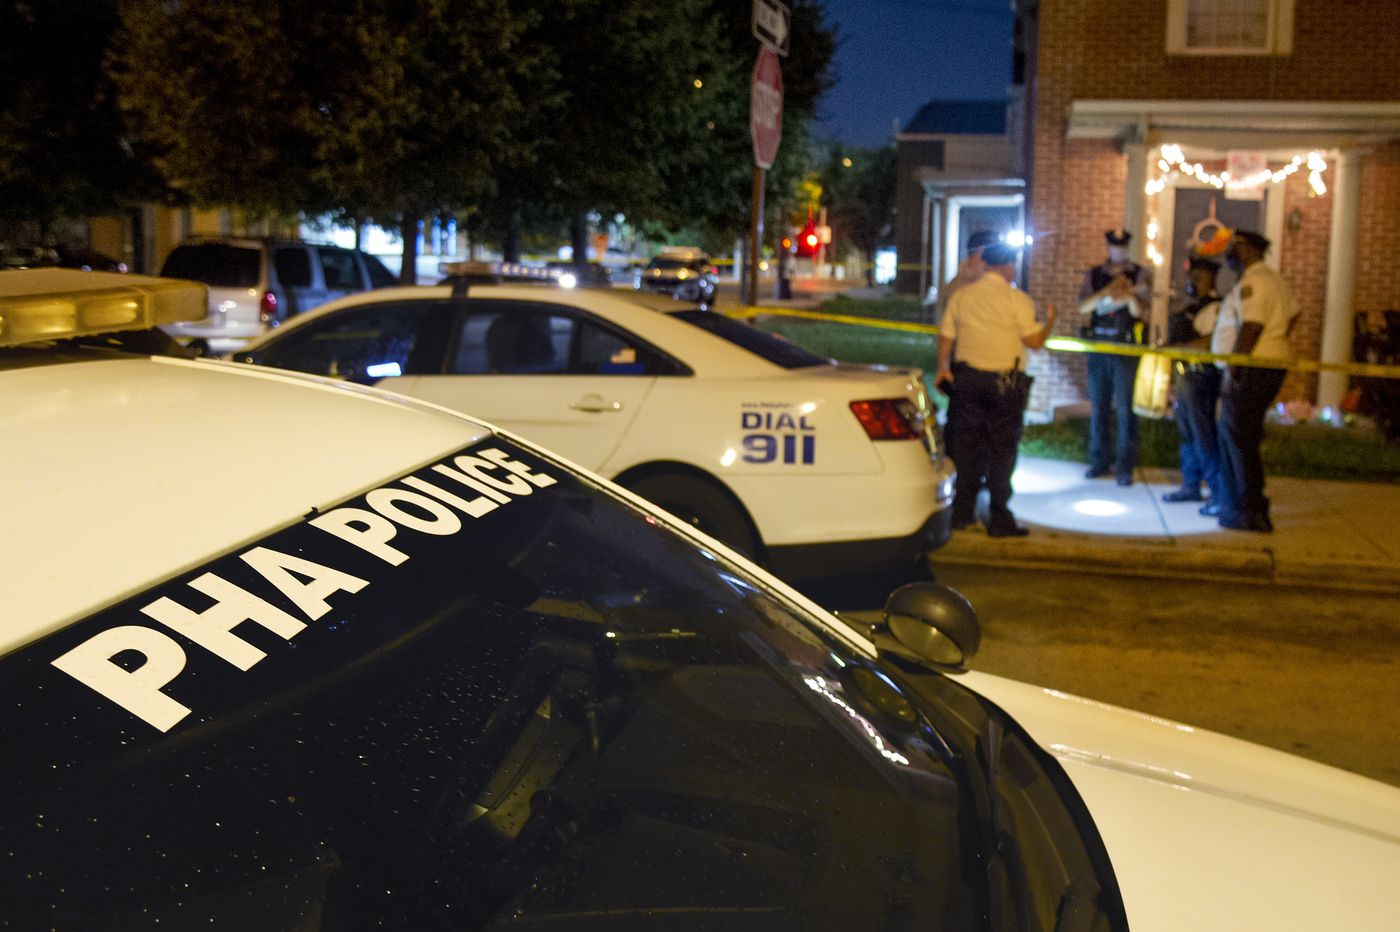 A North Philly teen survived 20 bullets in a neighborhood plagued by turf wars